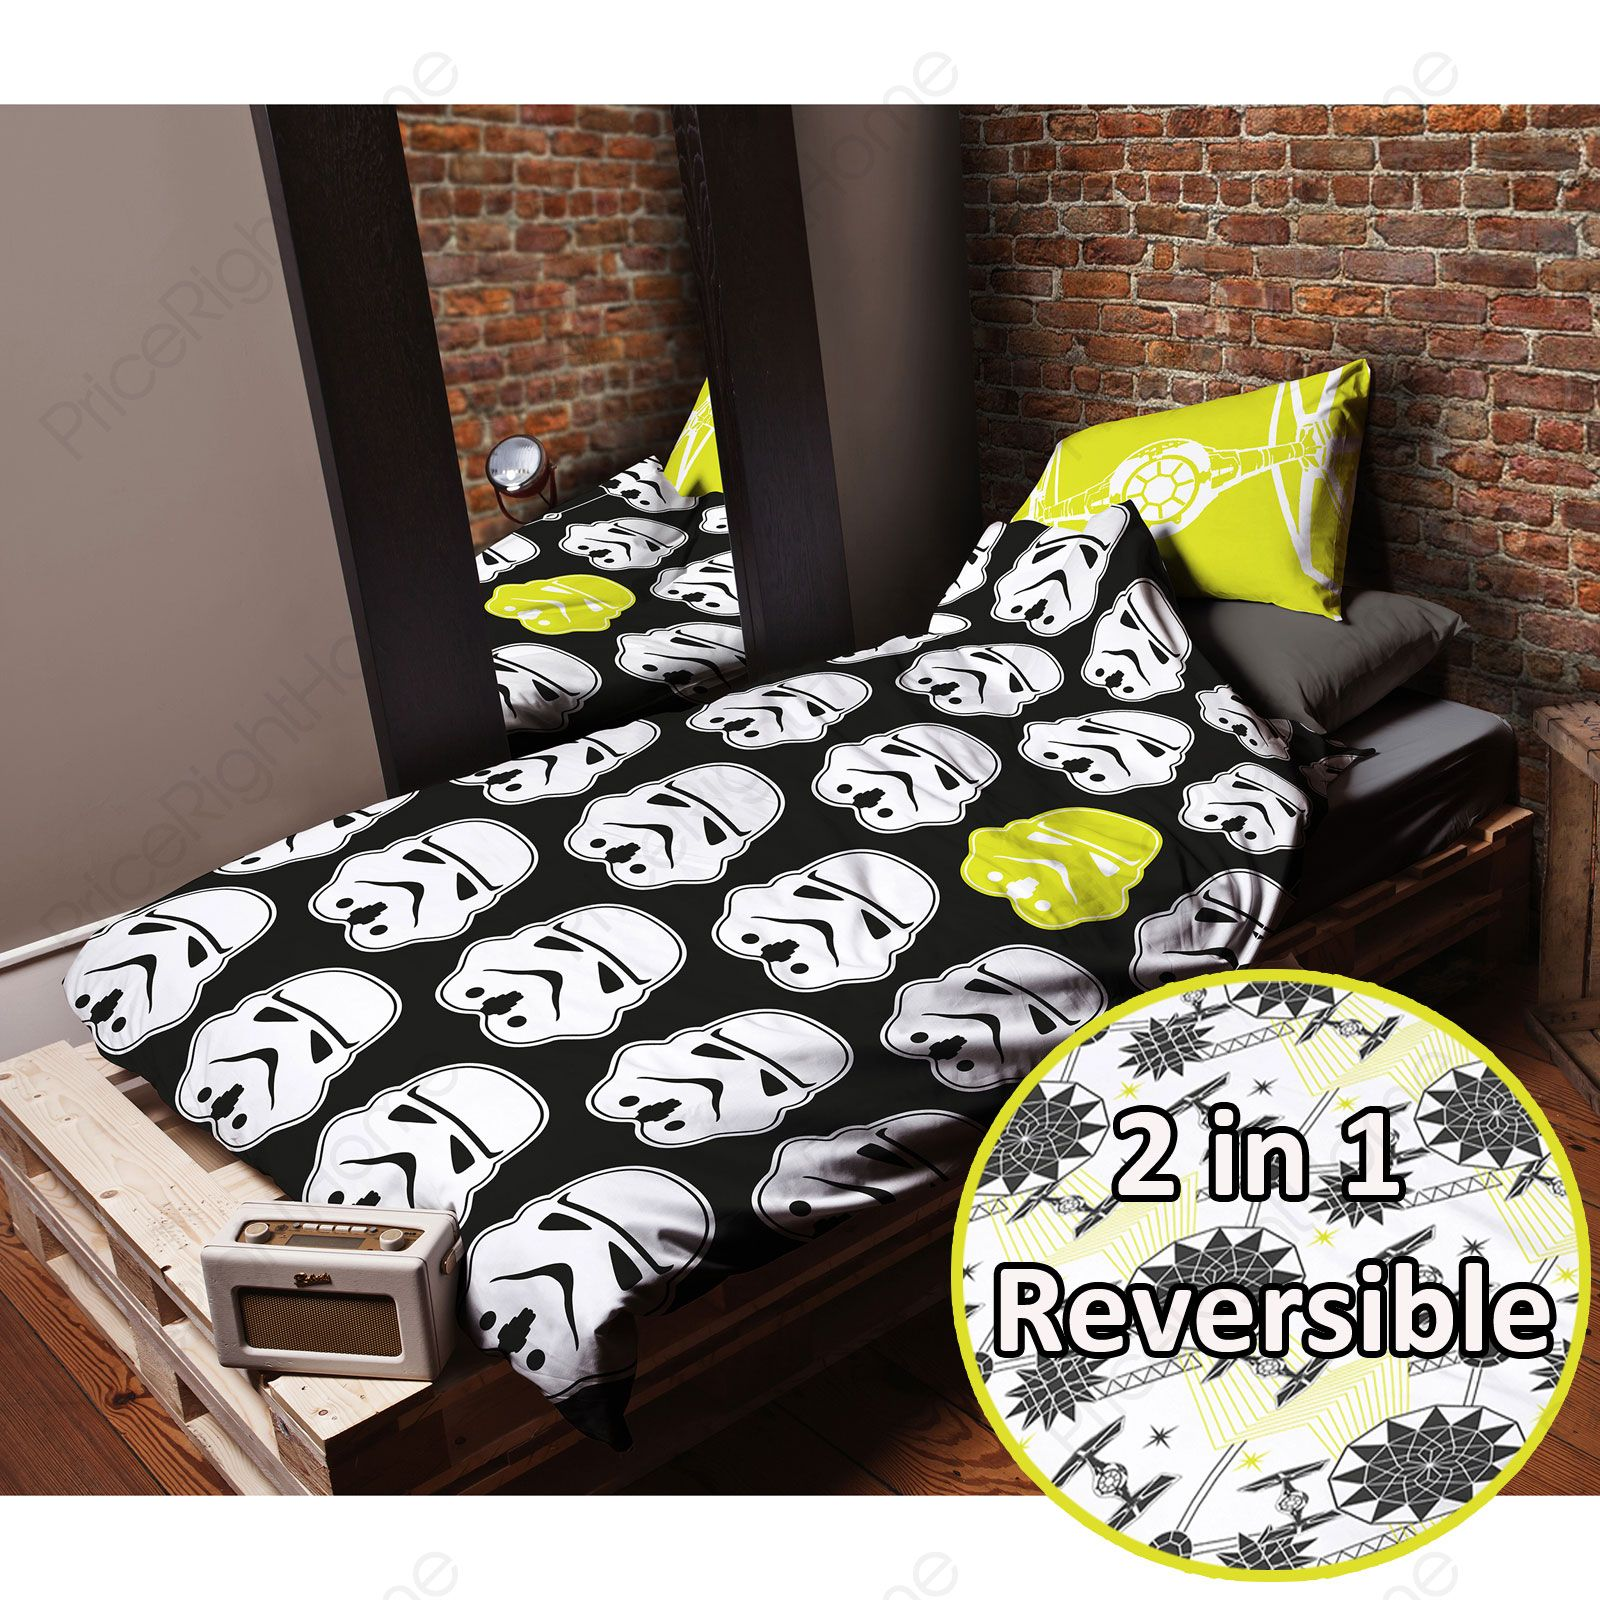 Star wars duvet covers bedding single double sizes - Housse de couette star wars 2 personnes ...